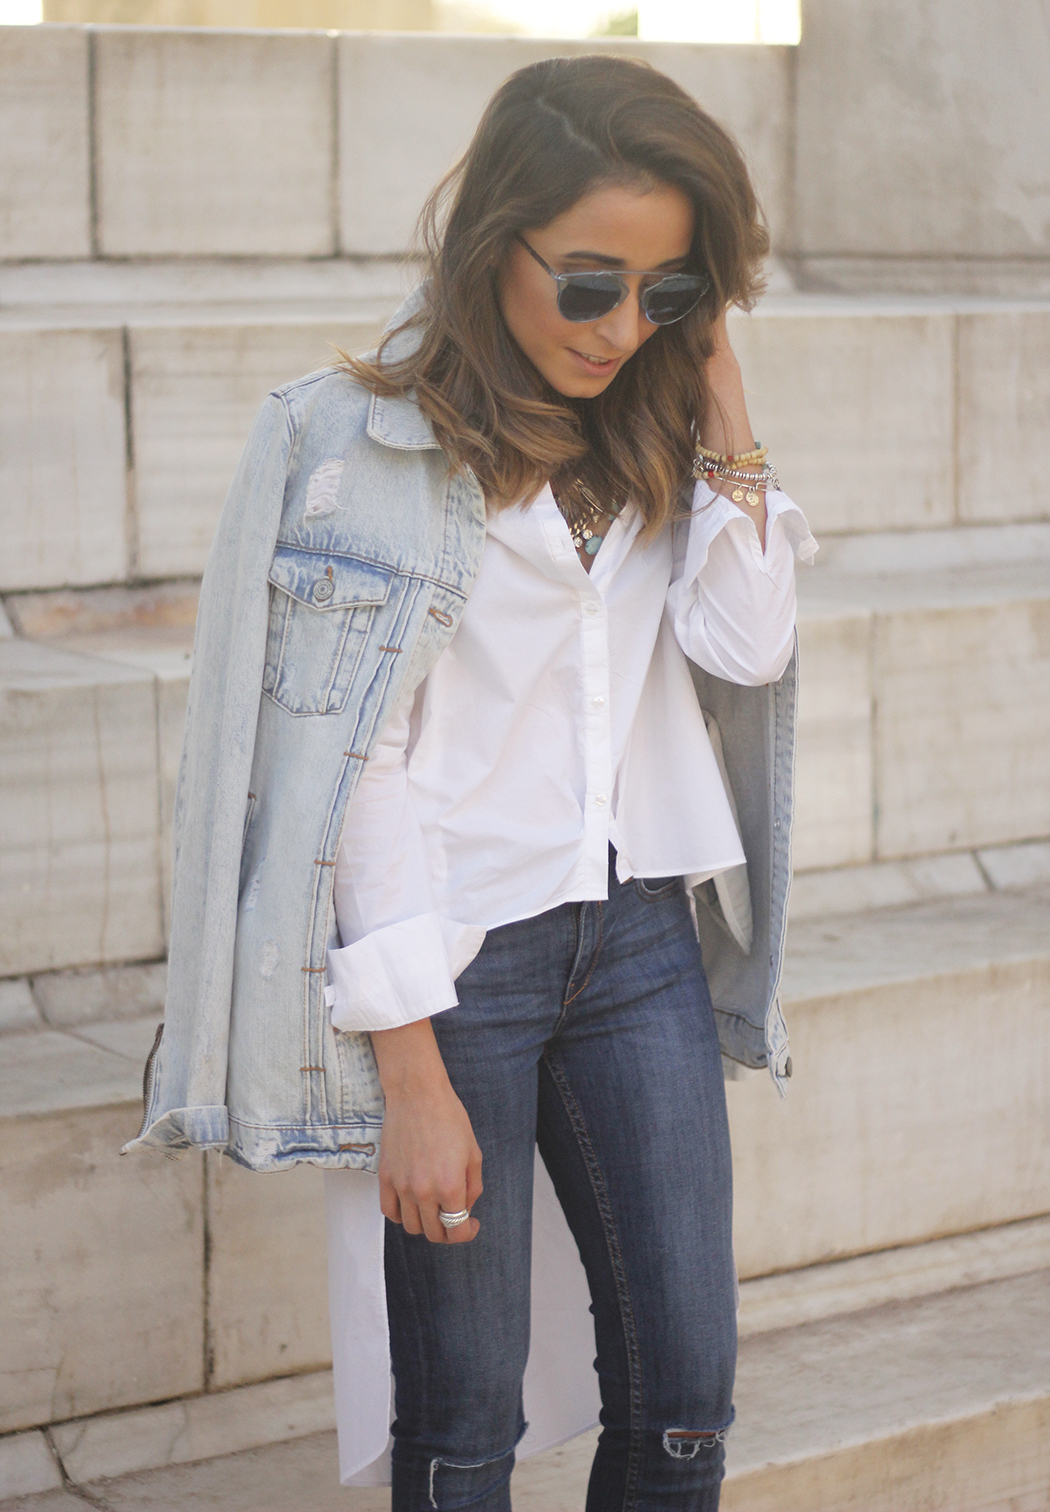 Denim Jacket Jeans White Shirt Black Heels outfit09